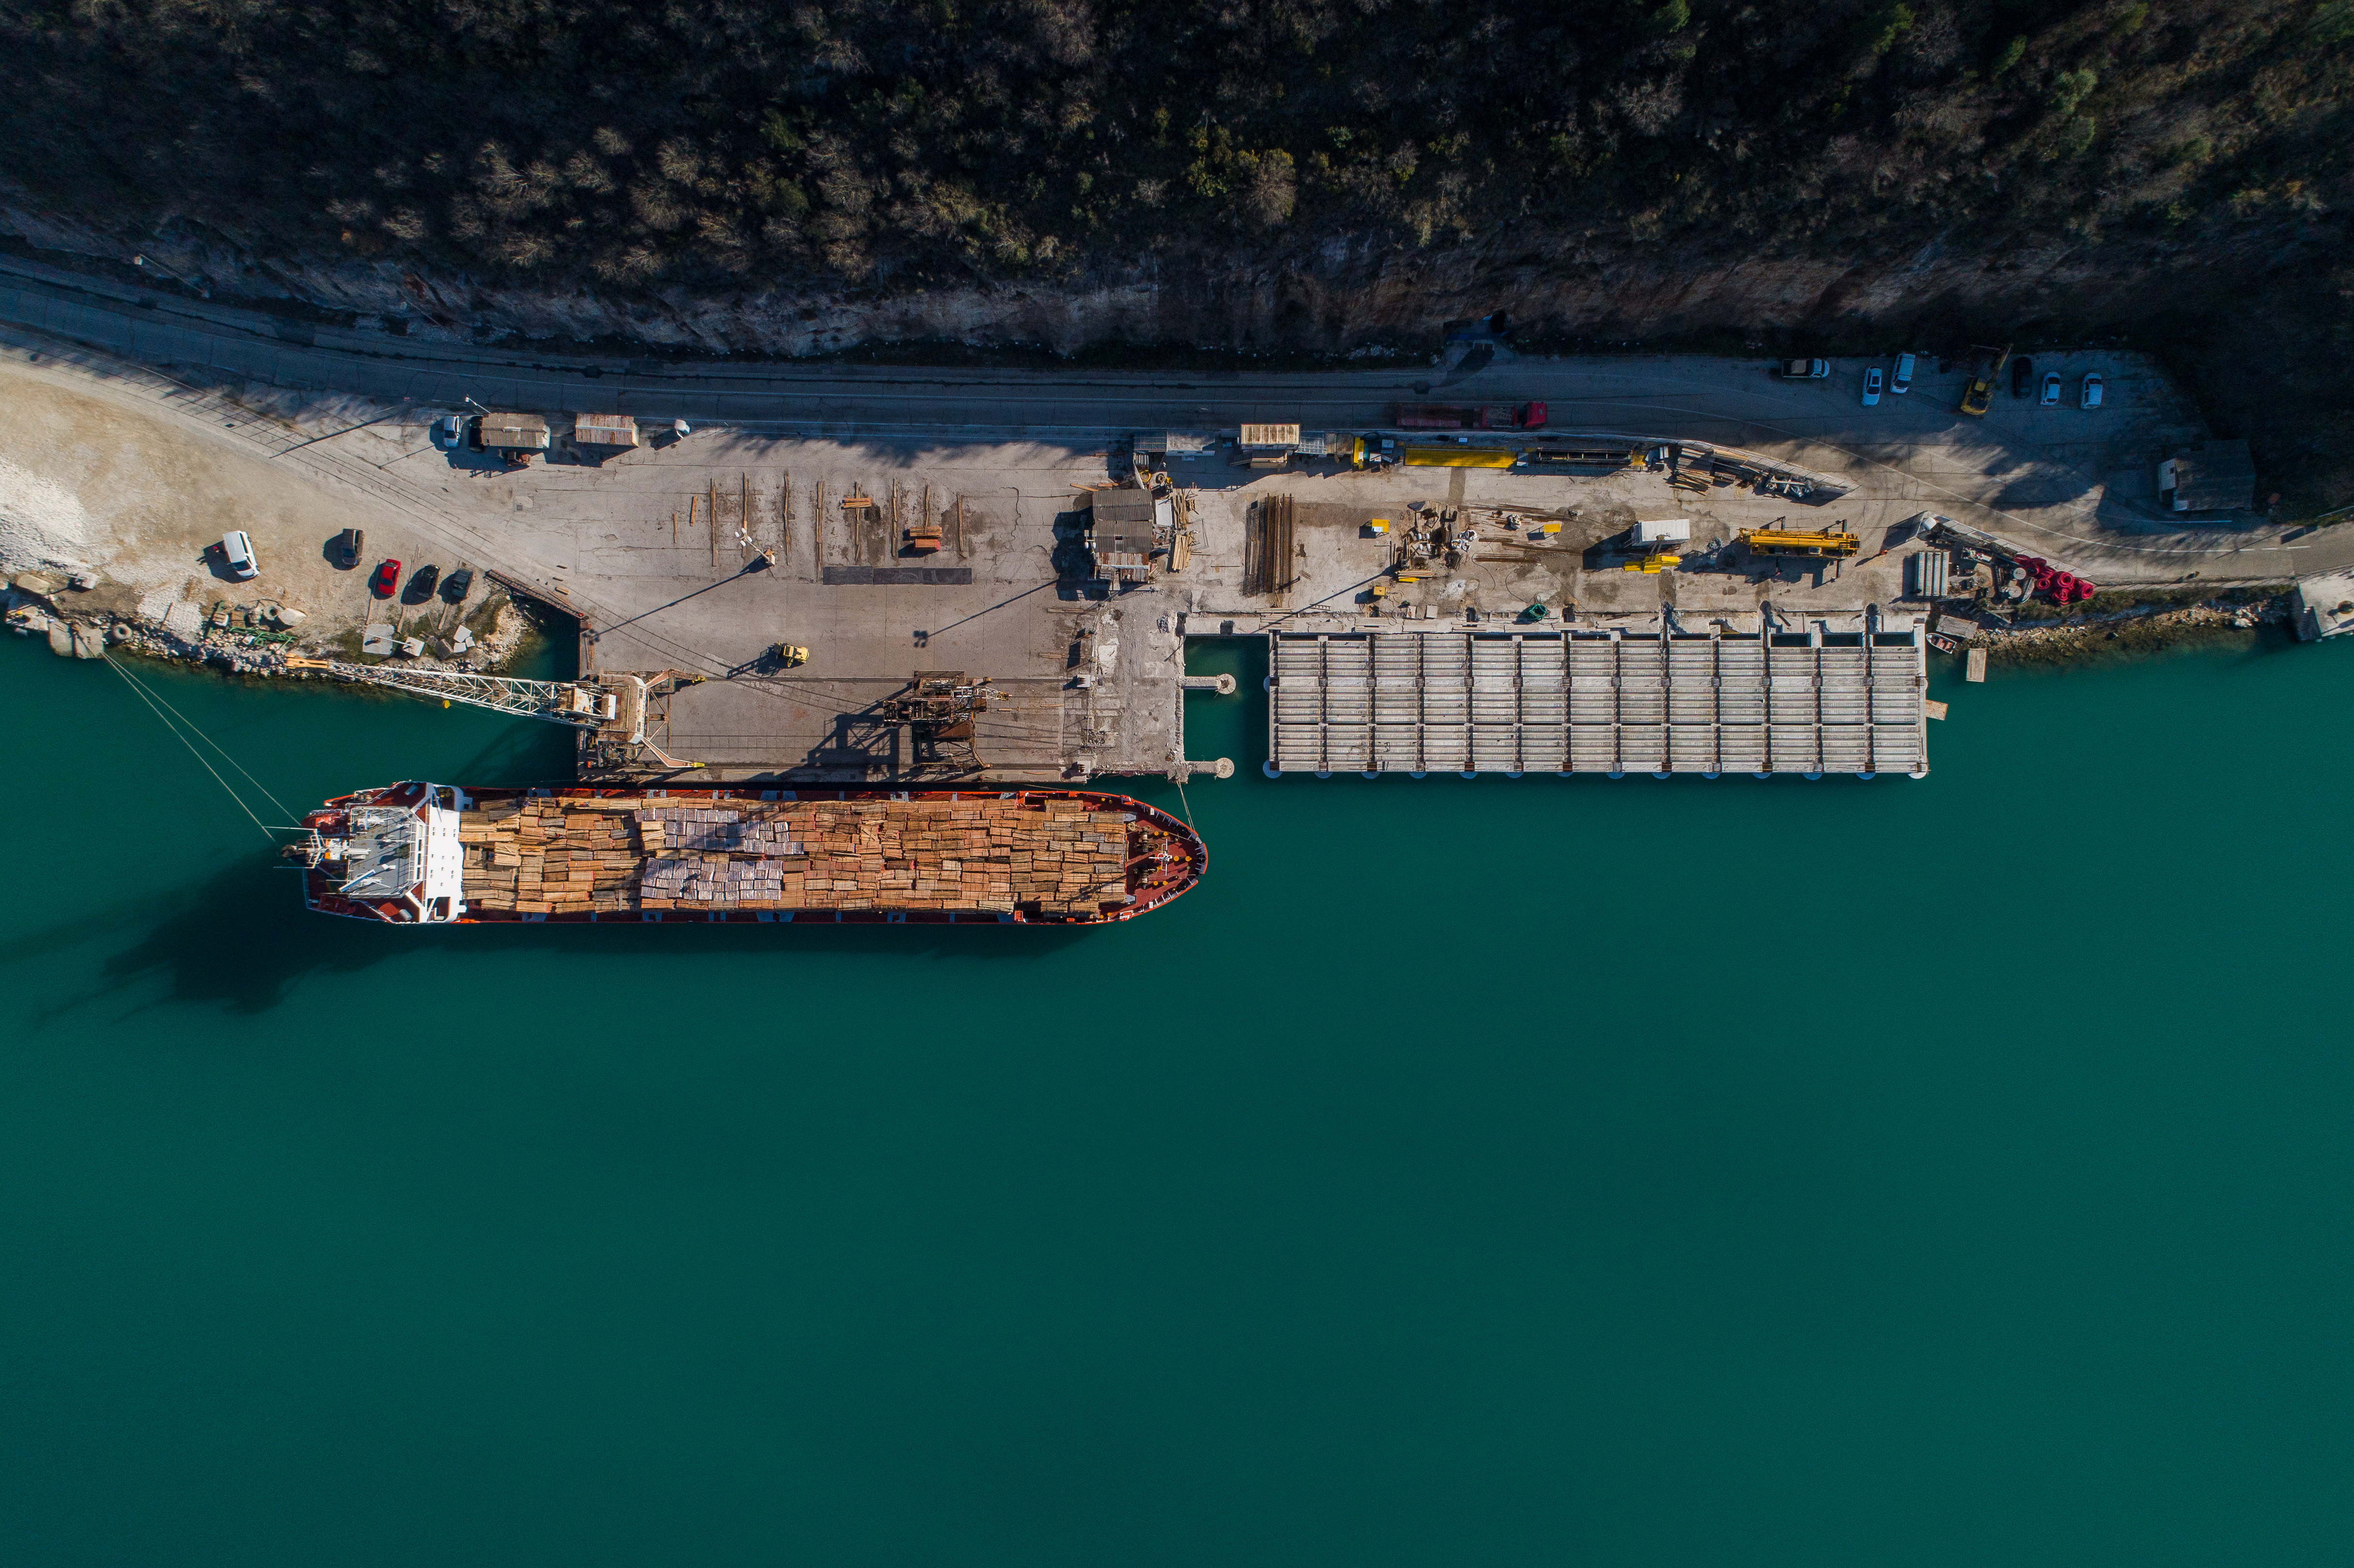 Upgrade of the Rijeka port infrastructure – Terminal for General Cargo (POR2CORE-GCT)